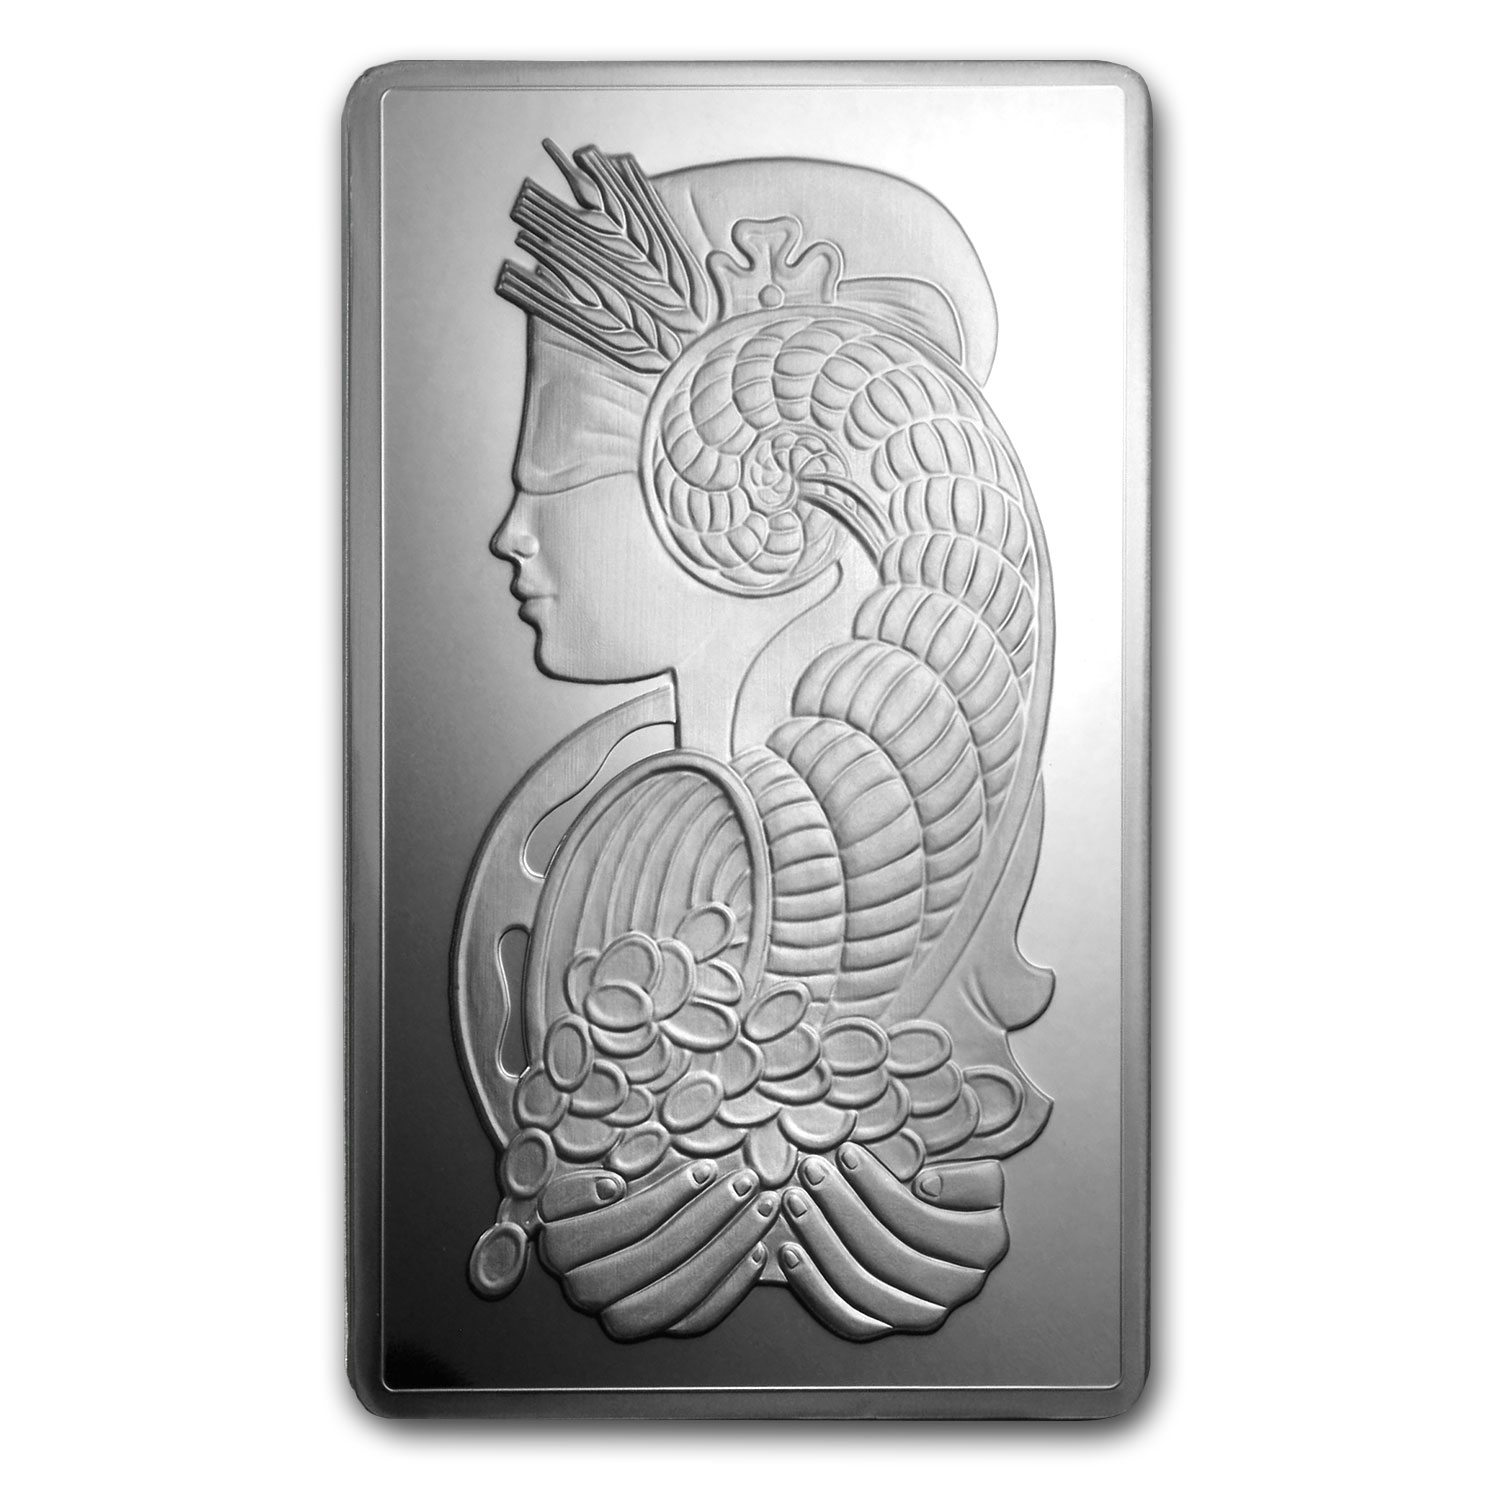 250 gram Silver Bar - PAMP Suisse (Fortuna, In Capsule w/Assay)